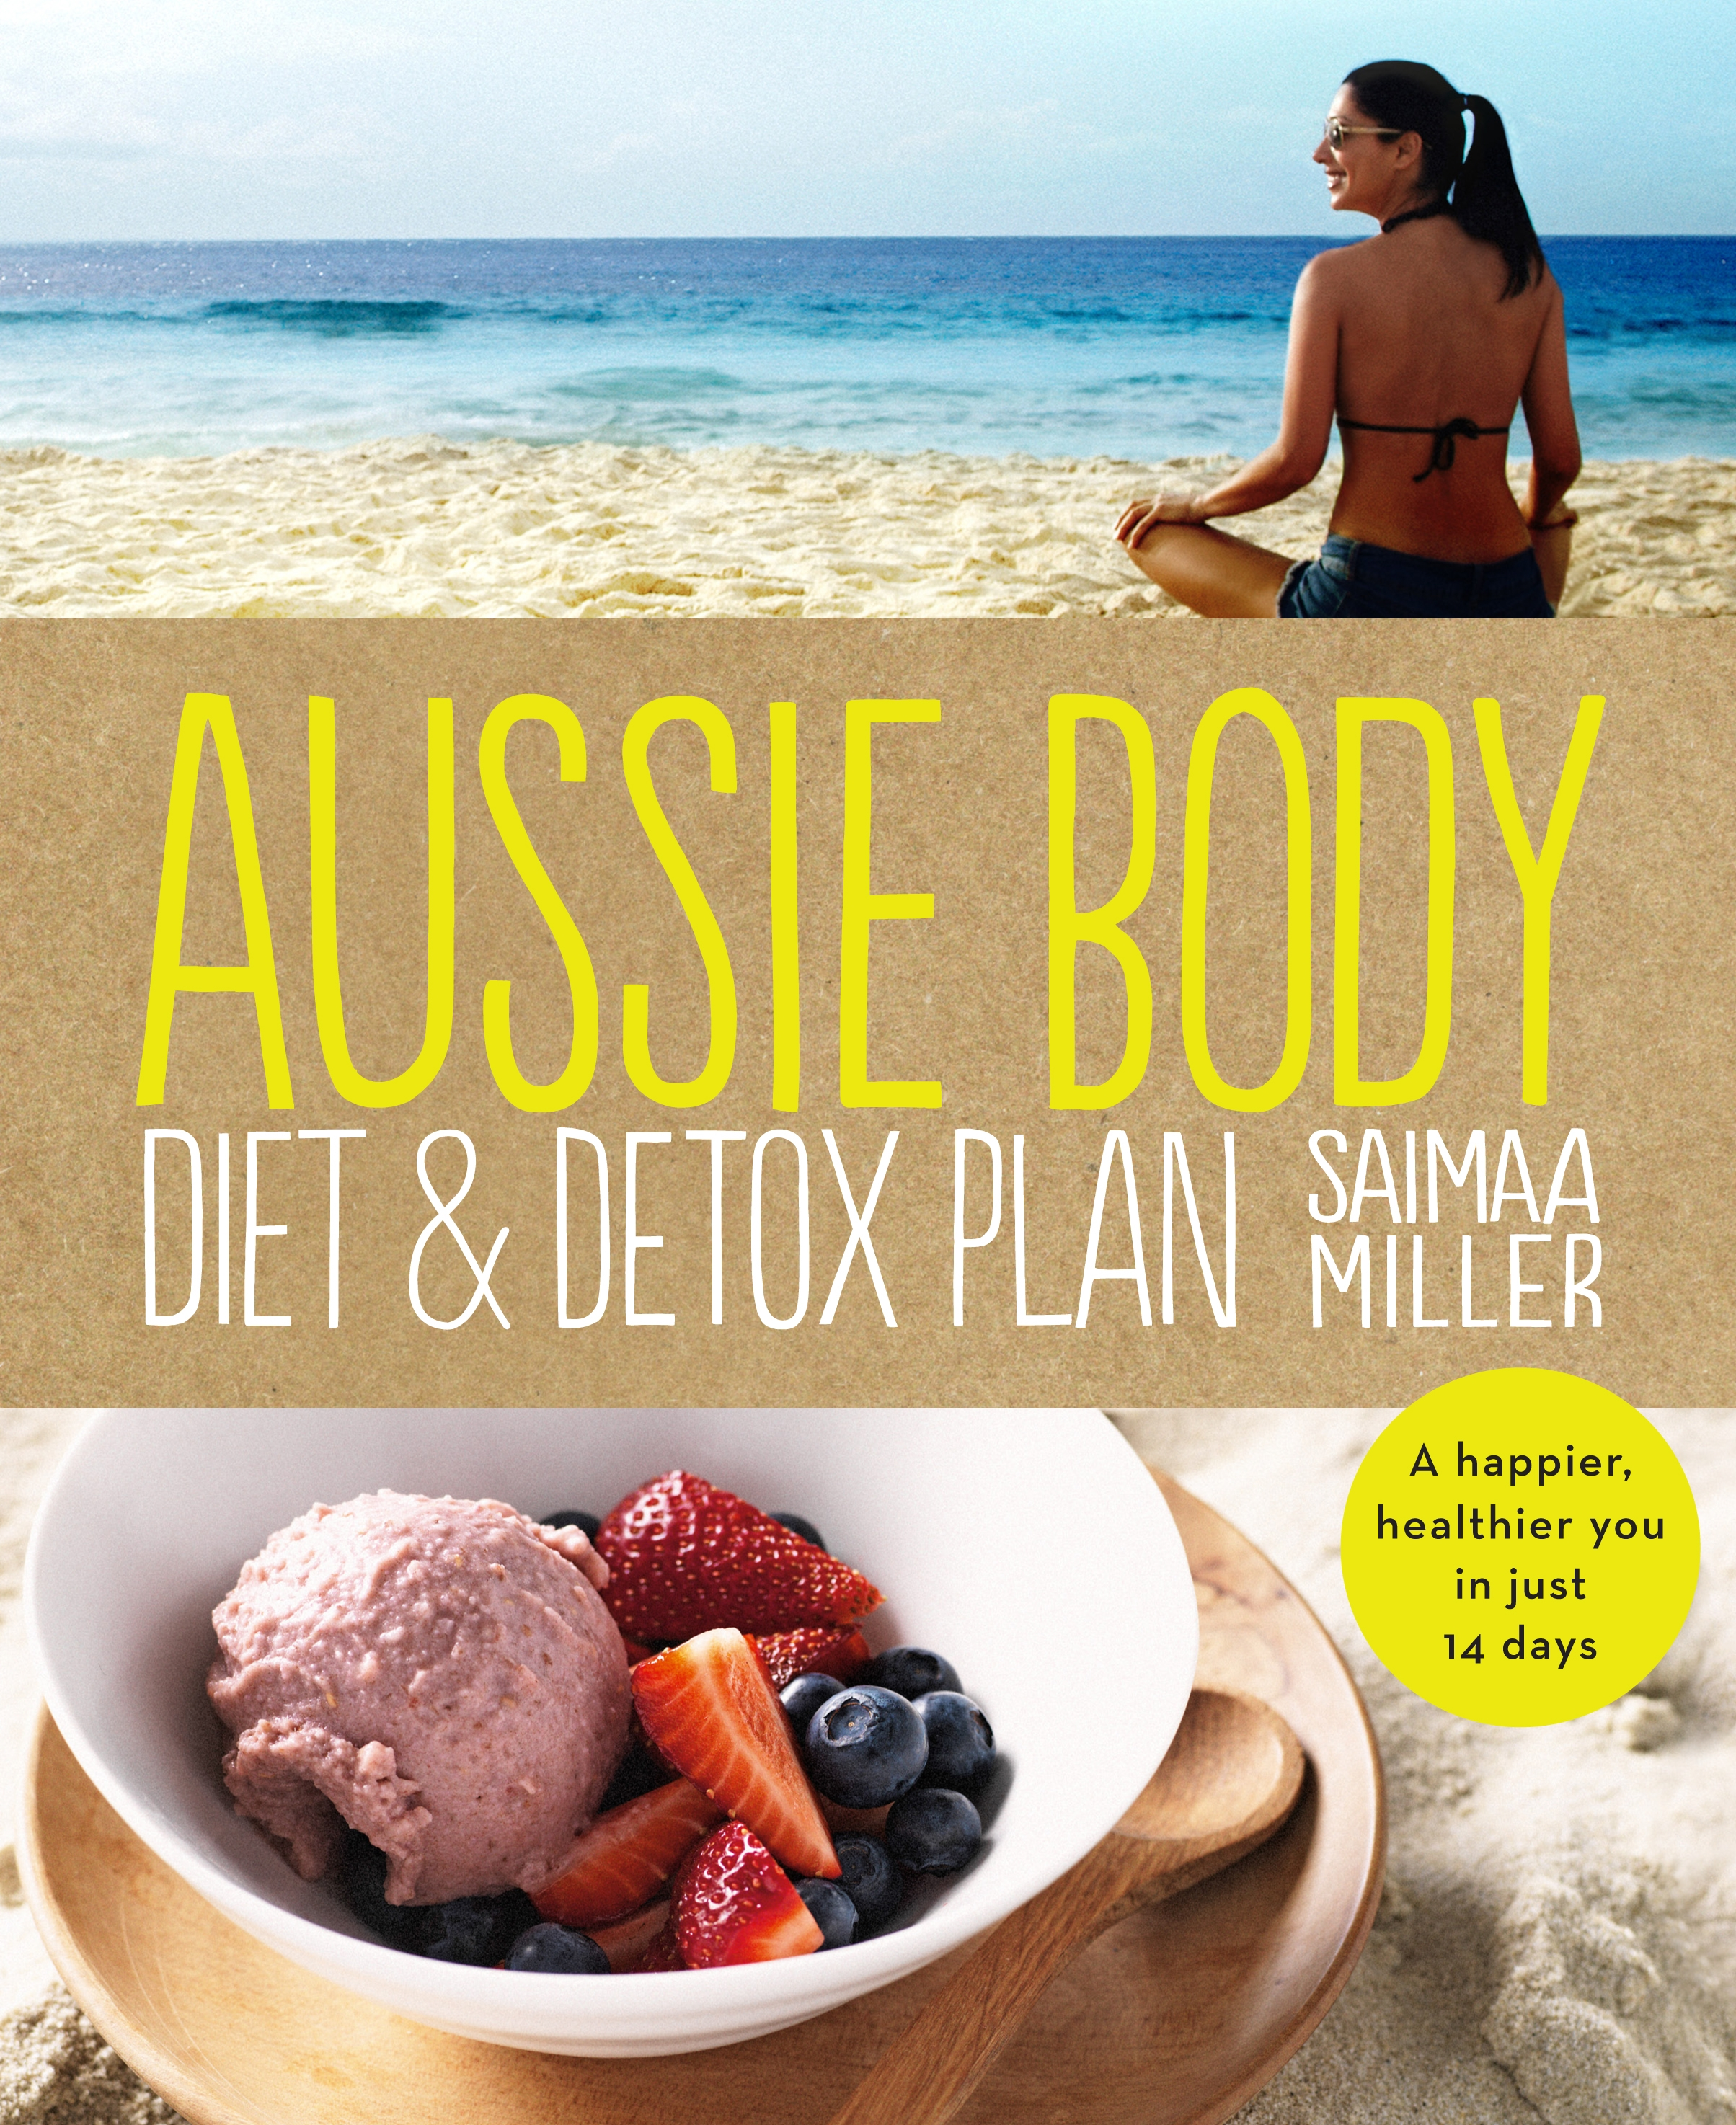 Book Cover:  Aussie Body Diet & Detox Plan